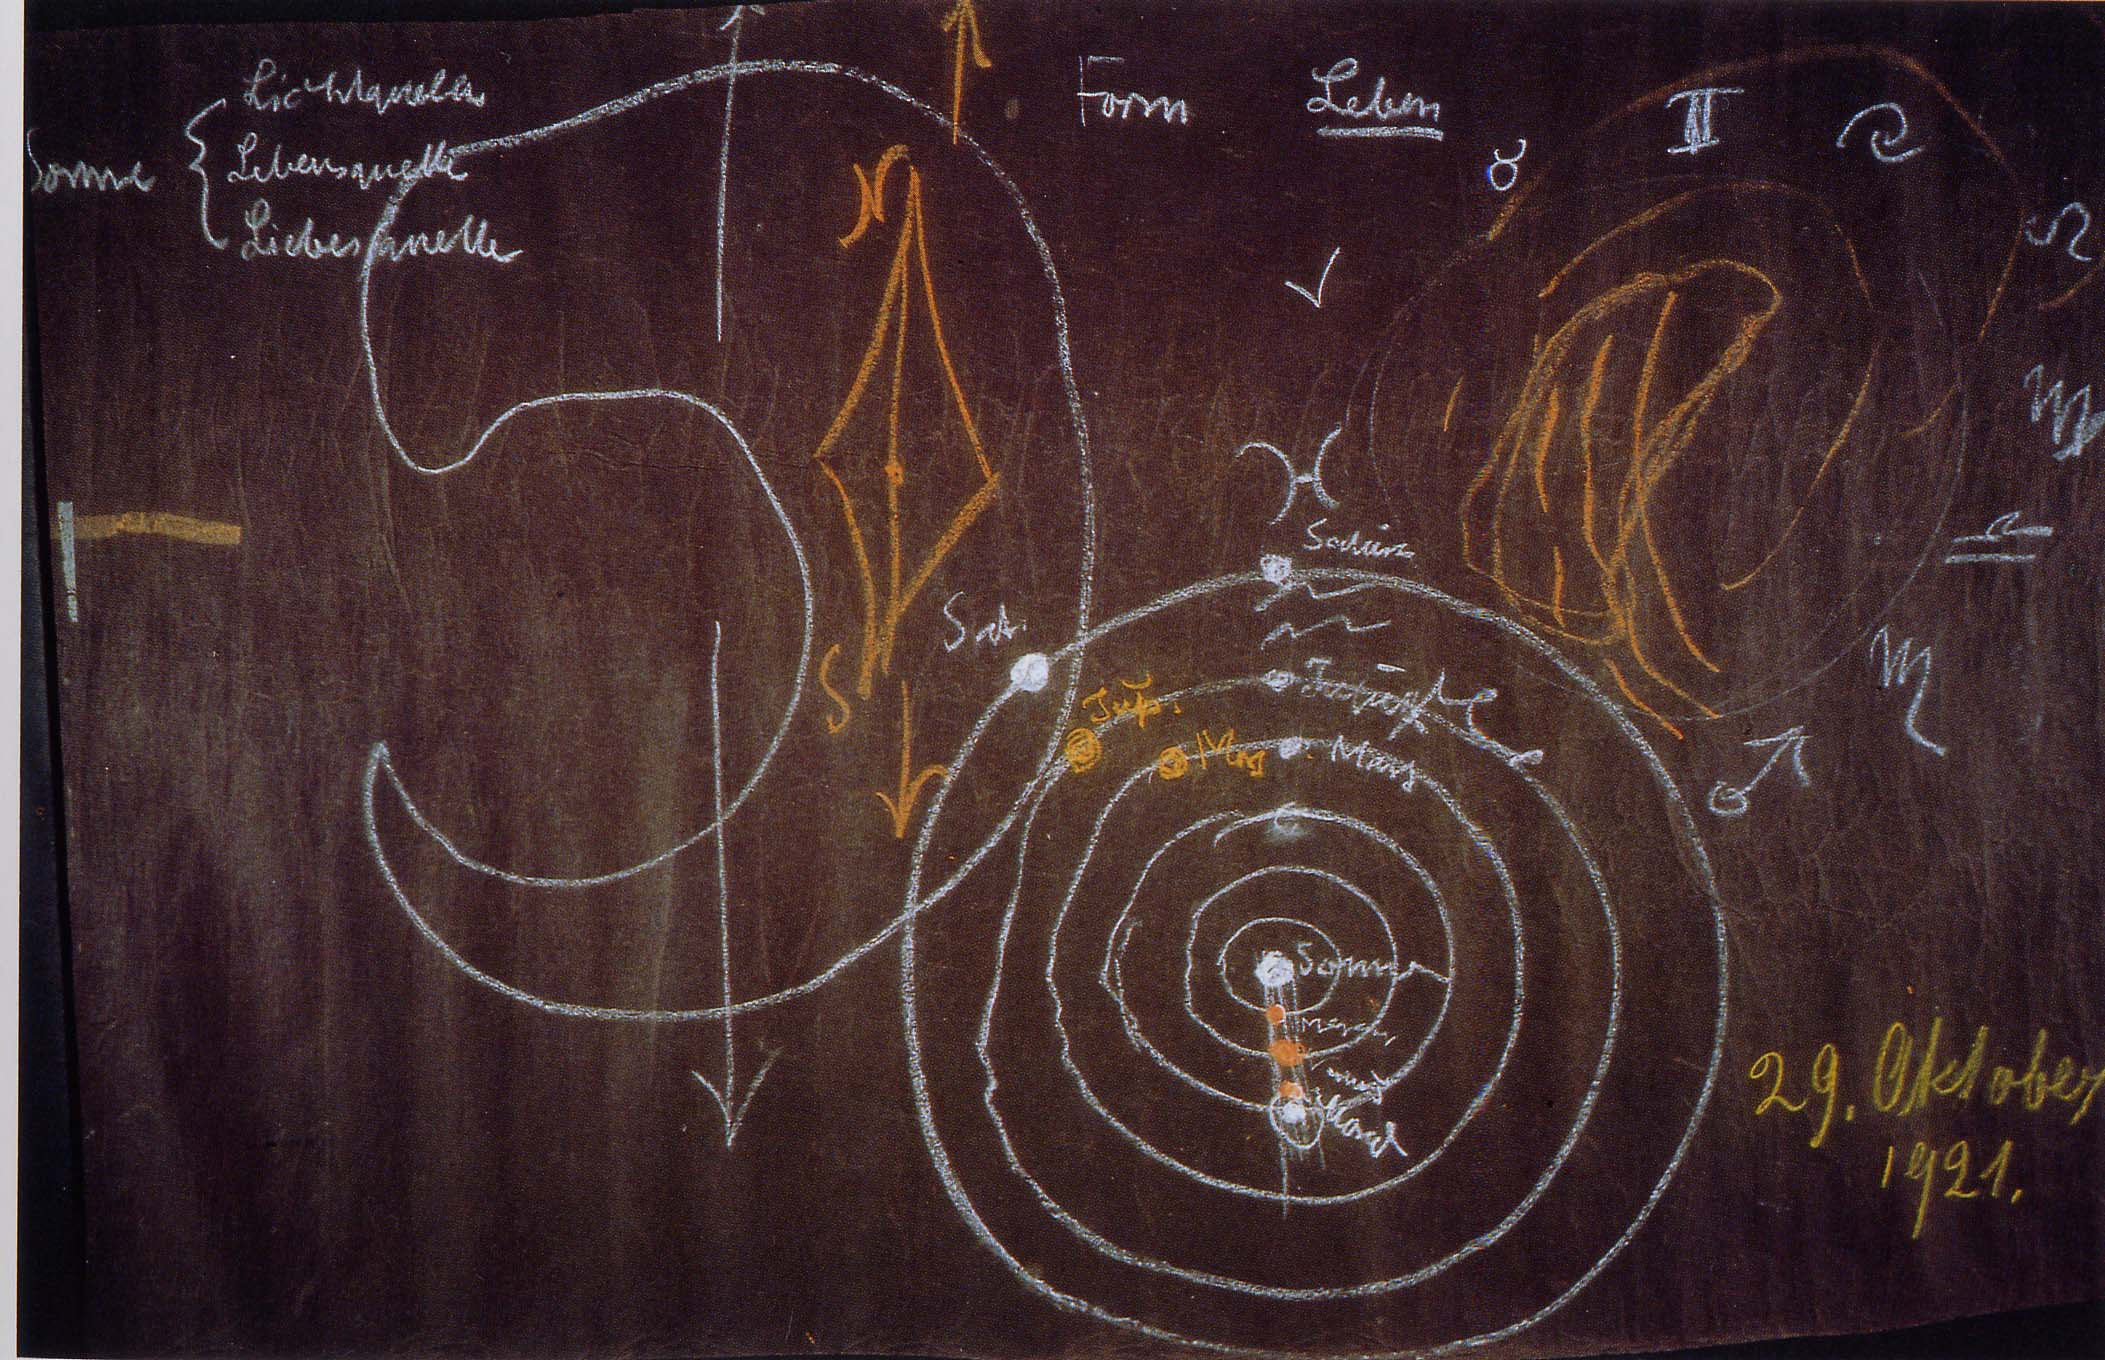 Blackboards at Work - Activity Rudolf Steiner Drawings